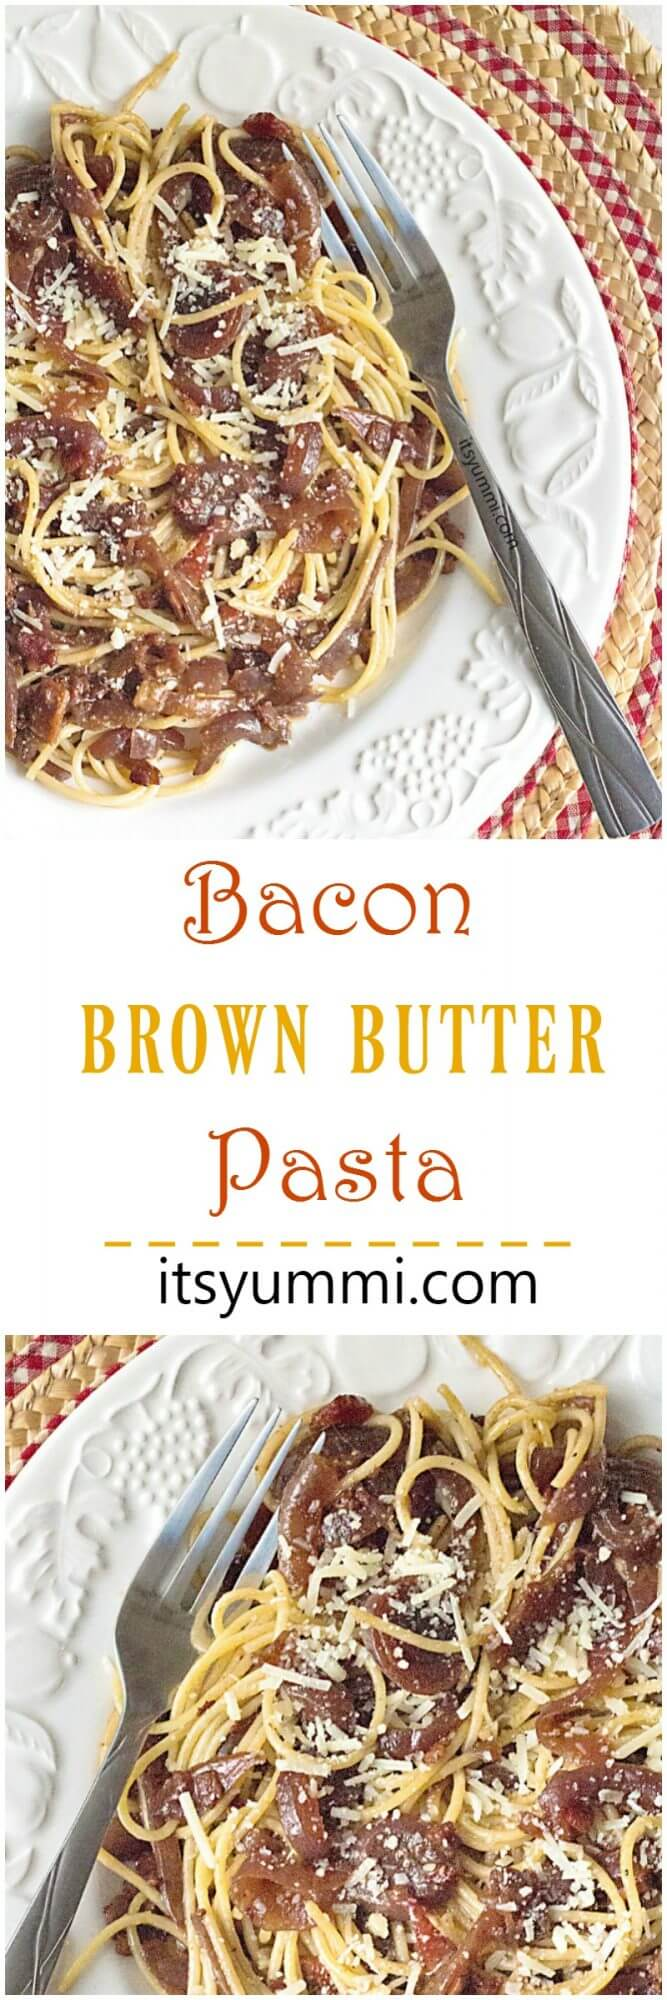 Brown Butter Bacon Pasta - Just 4 ingredients and 20 minutes to make this delicious dinner recipe! @itsyummi